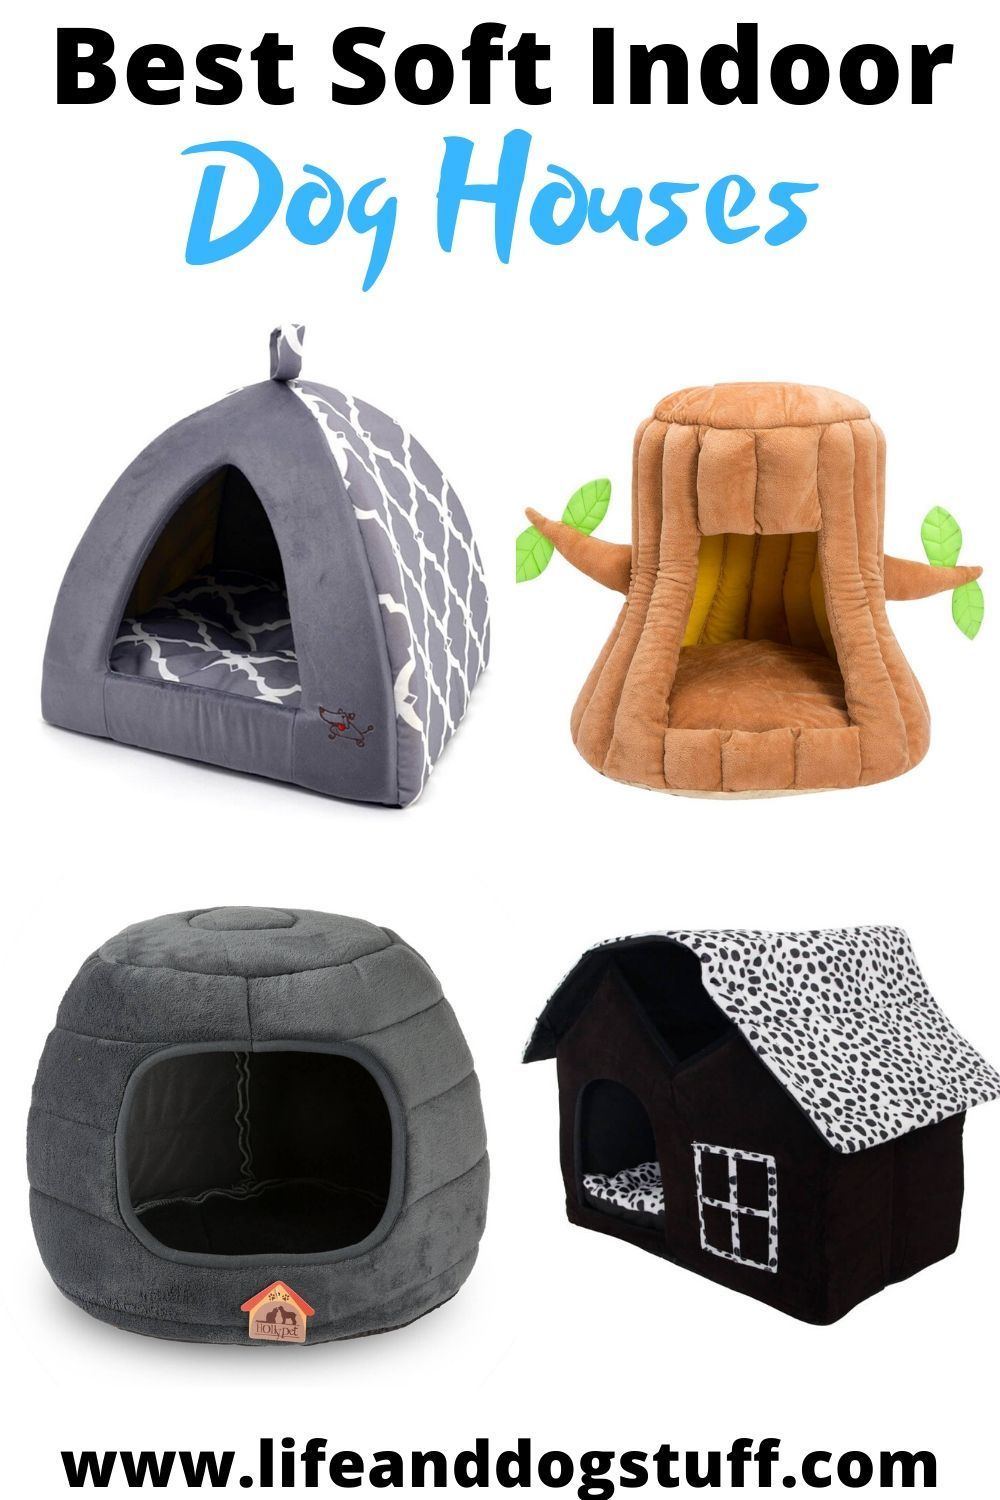 10 Best Soft Indoor Dog Houses For Small Dogs Indoor Dog House Indoor Dog Dog Houses